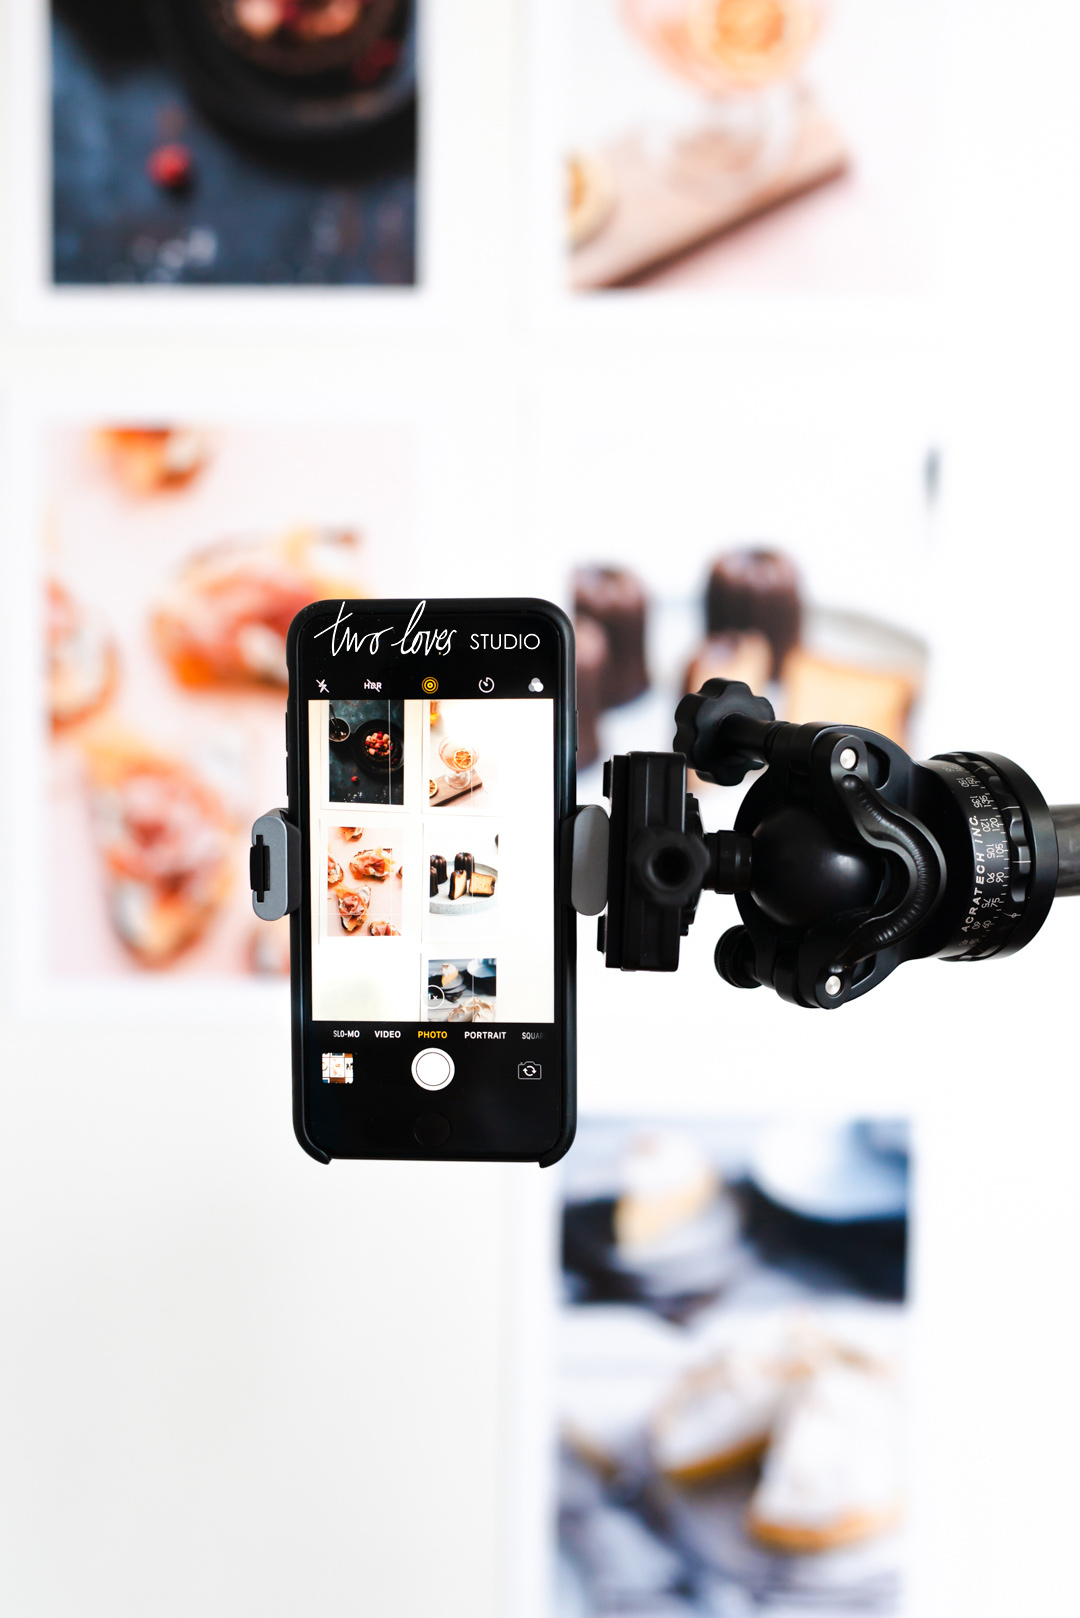 Need a tripod for your food photography? Check out this comprehensive guide about what I use, and what you need to look for. Click to read. #foodphotography #learnfoodphotography #tripod